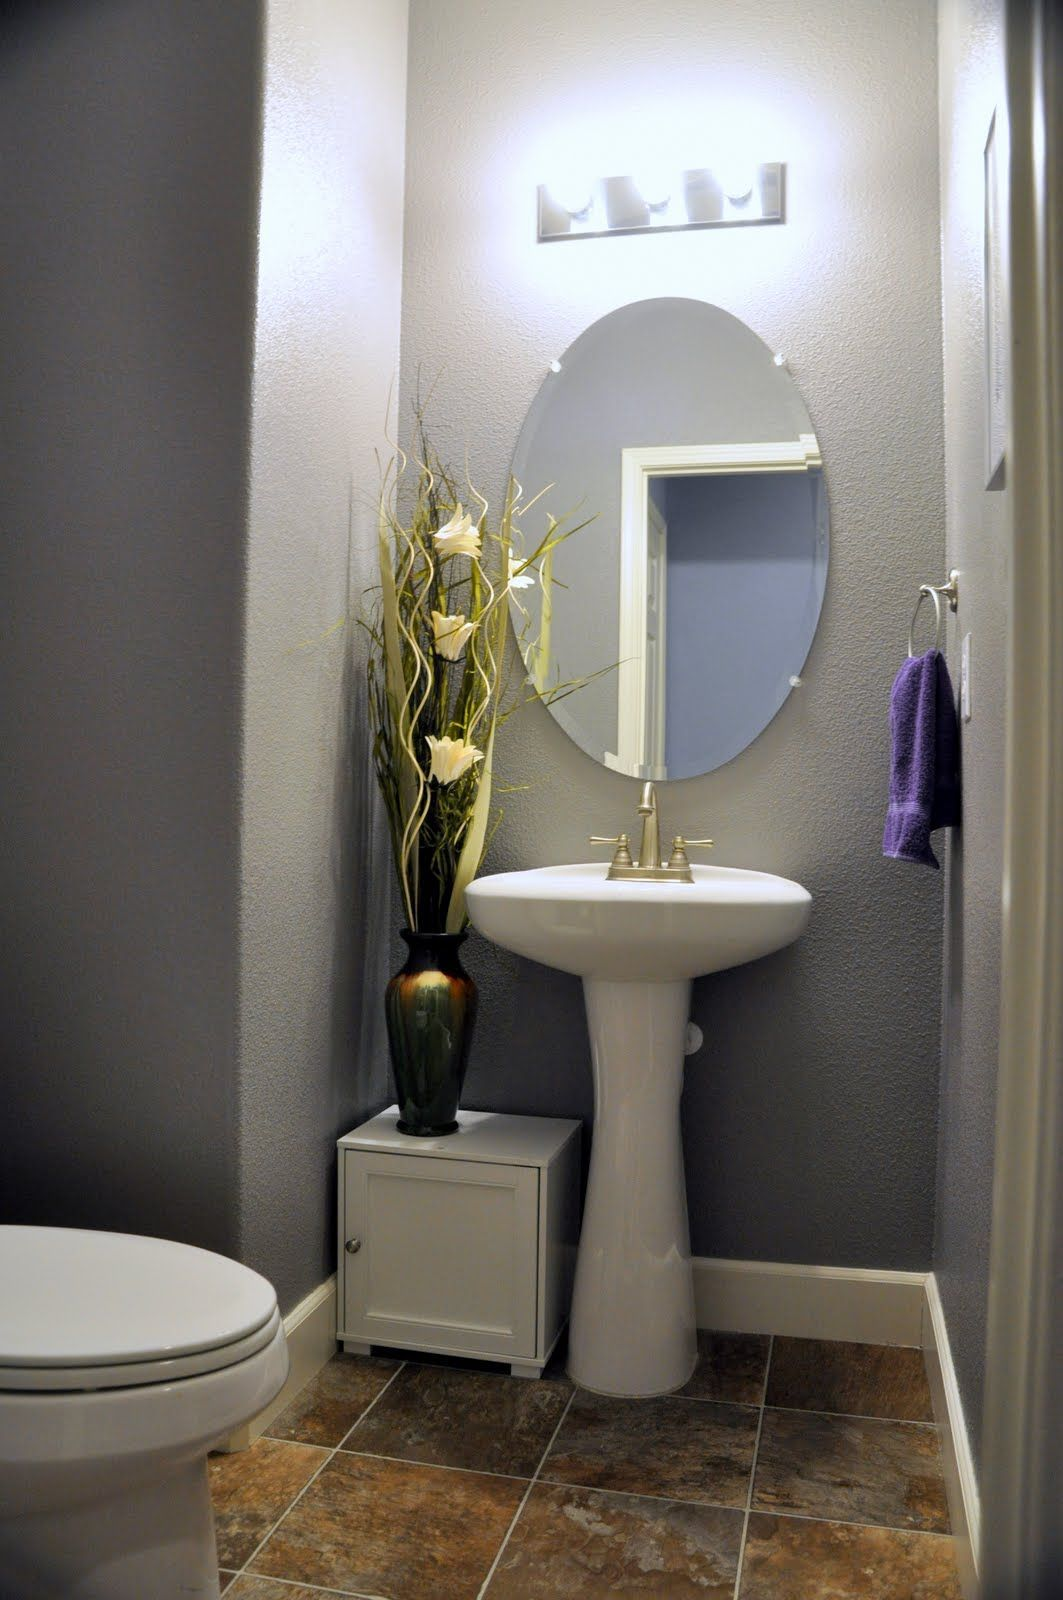 20 Beautiful Powder Room Ideas With Pedestal Sink Powder Room